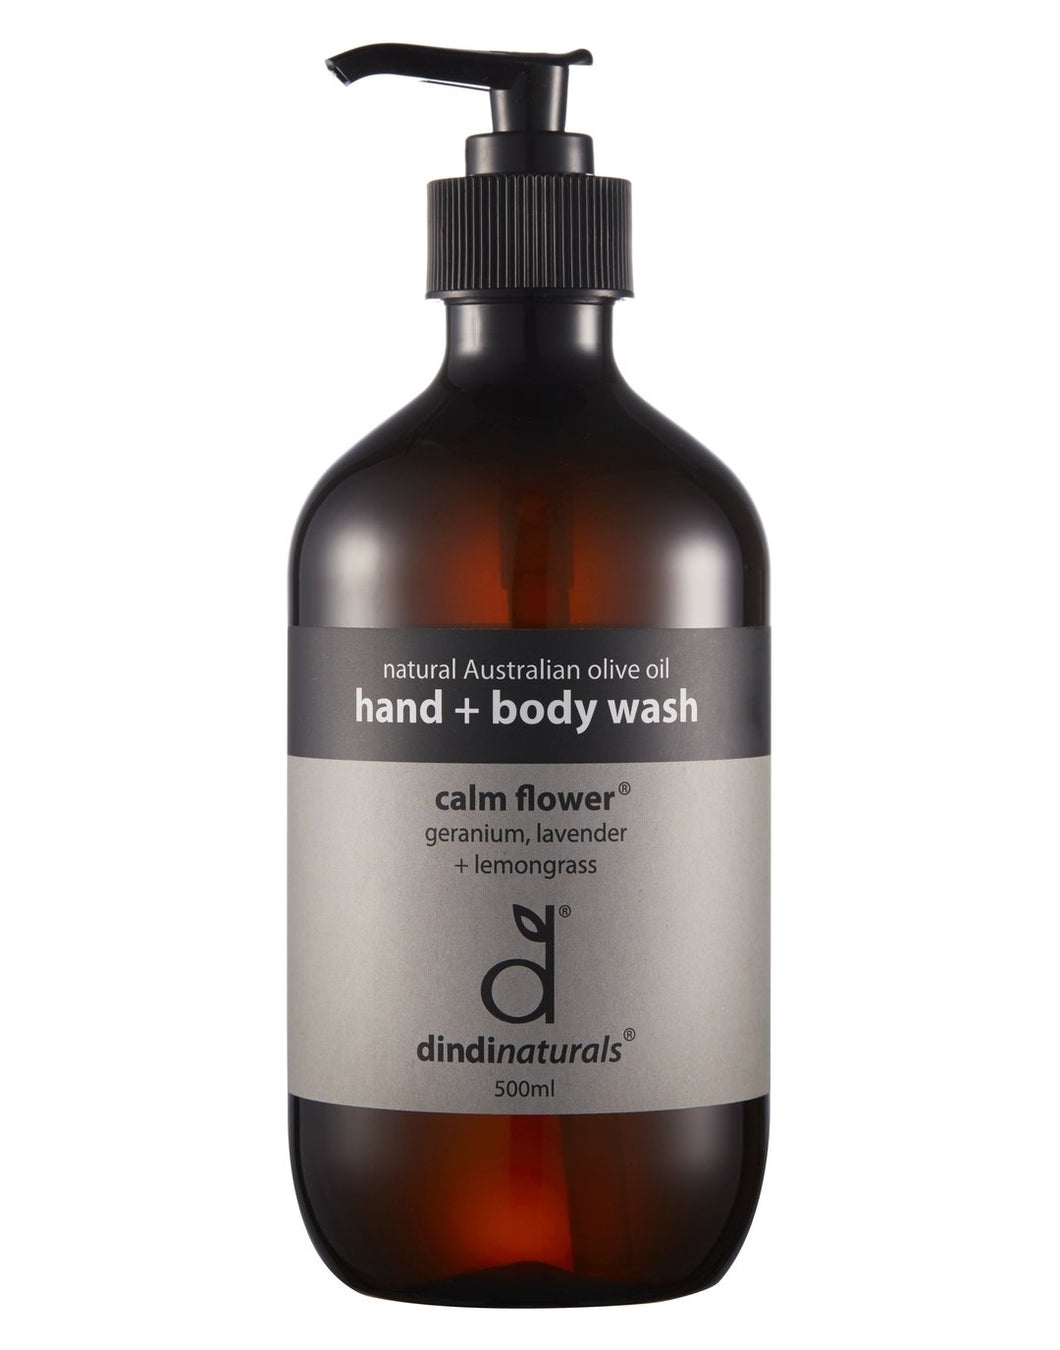 Dindi hand + body wash calm flower - 500ml